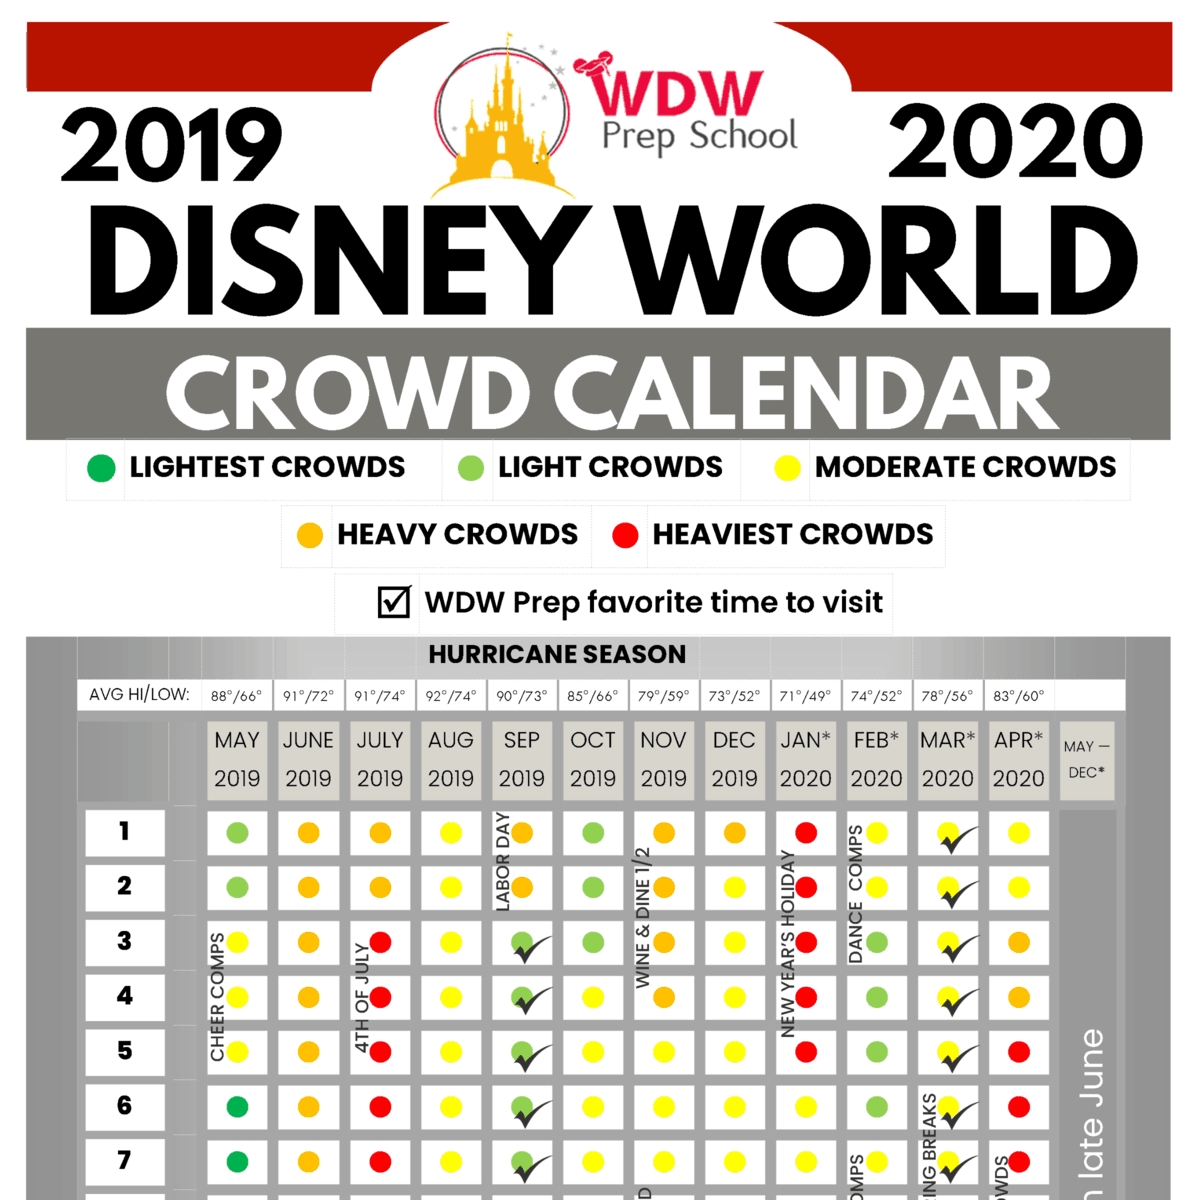 Disney World 2019 & 2020 Crowd Calendar (Best Times To Go-January 2020 Wdw Crowd Calendar